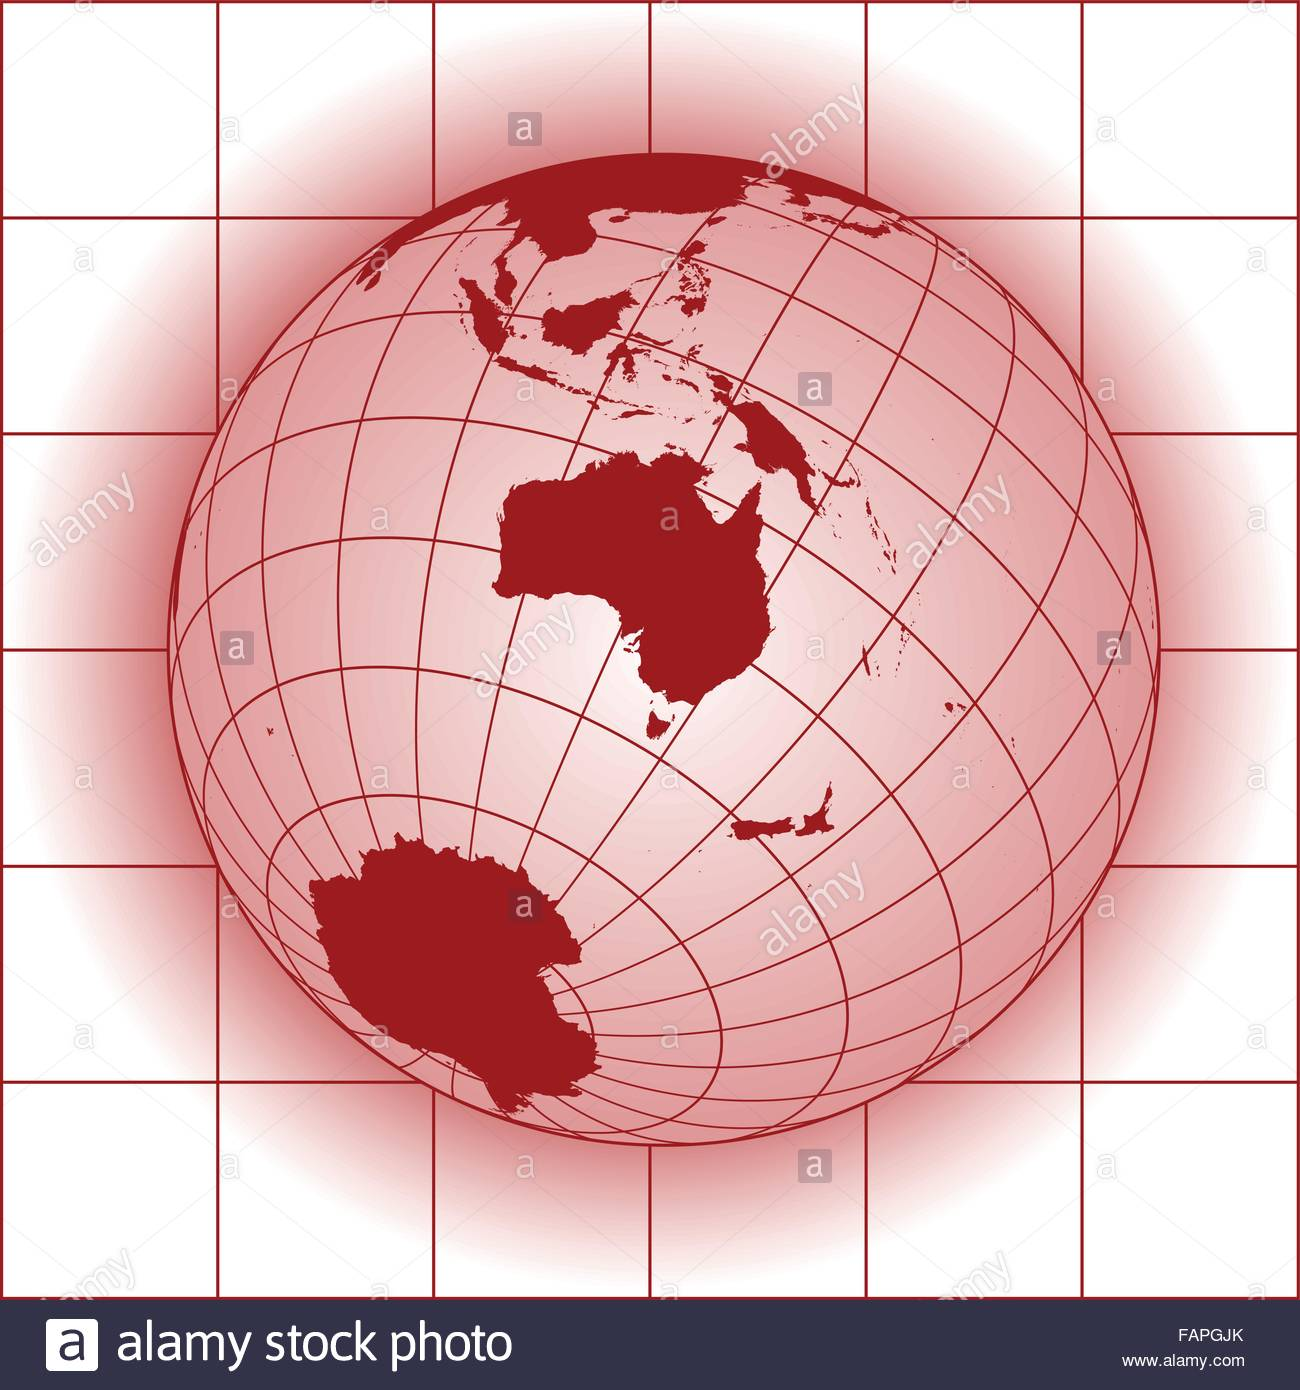 australia map asia russia antarctica north pole earth globe worldmap elements of this image furnished by nasa